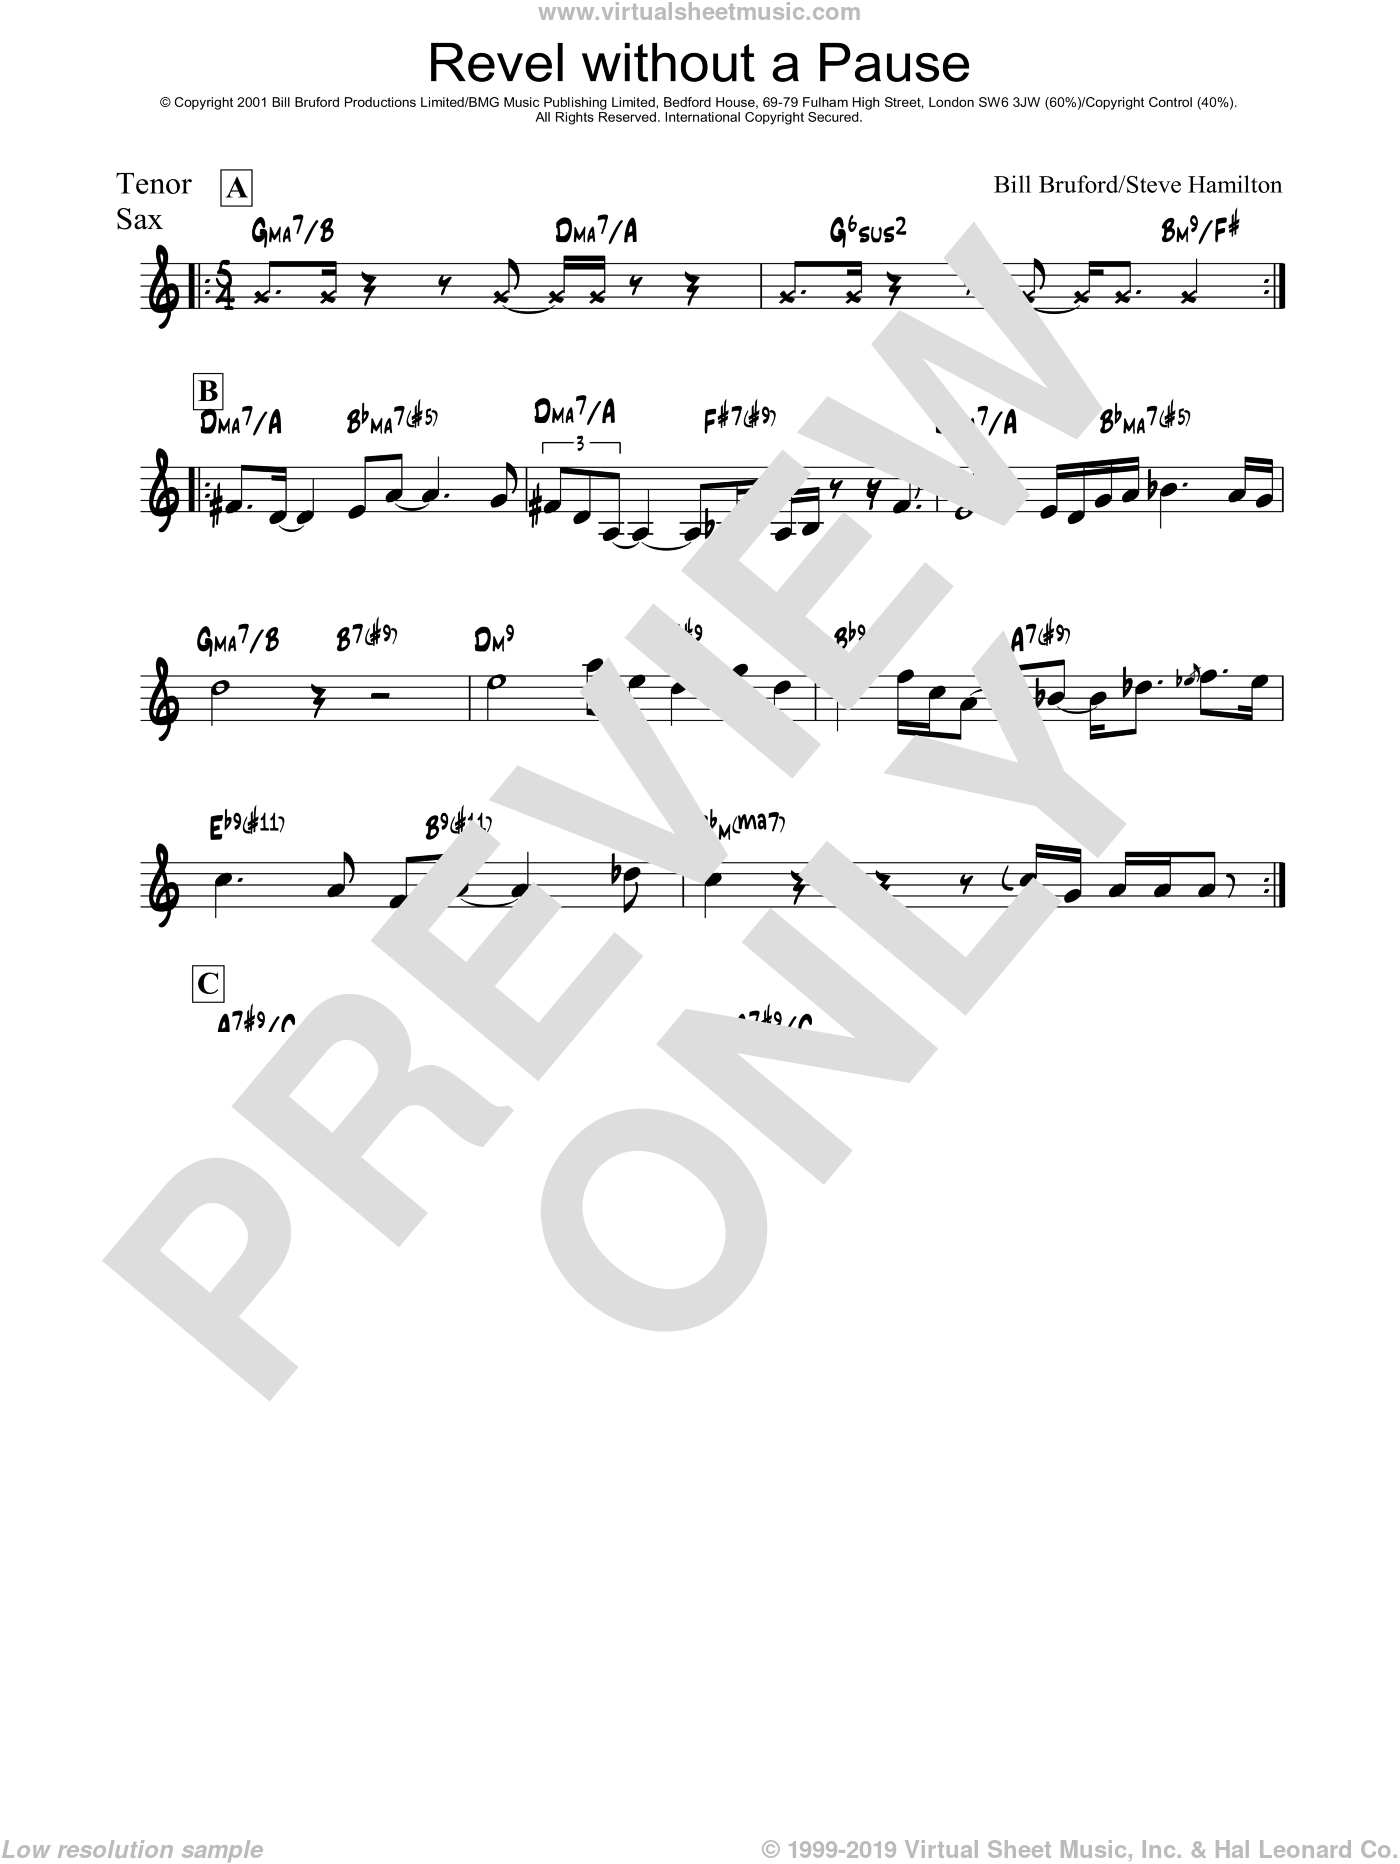 Revel Without A Pause sheet music for voice and other instruments (fake book) by Steve Hamilton